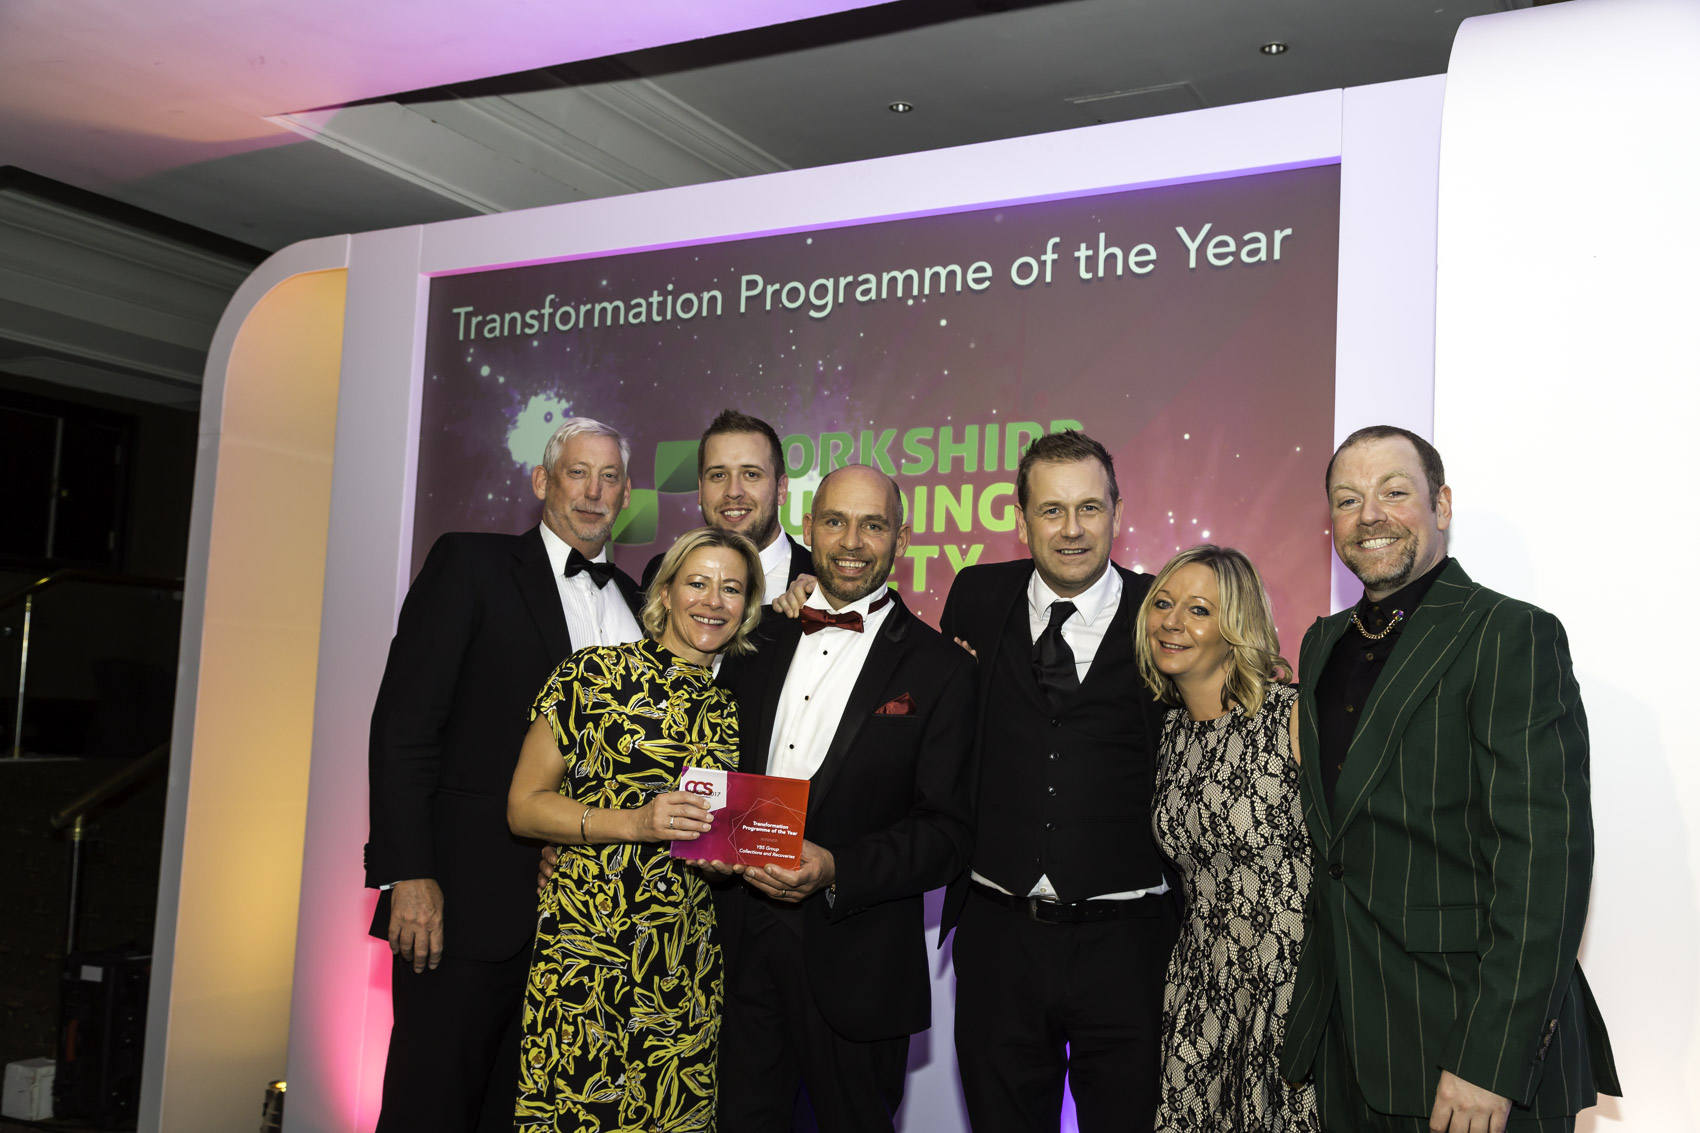 Winners CCS 2017 - 12 Transformation Programme of the Year